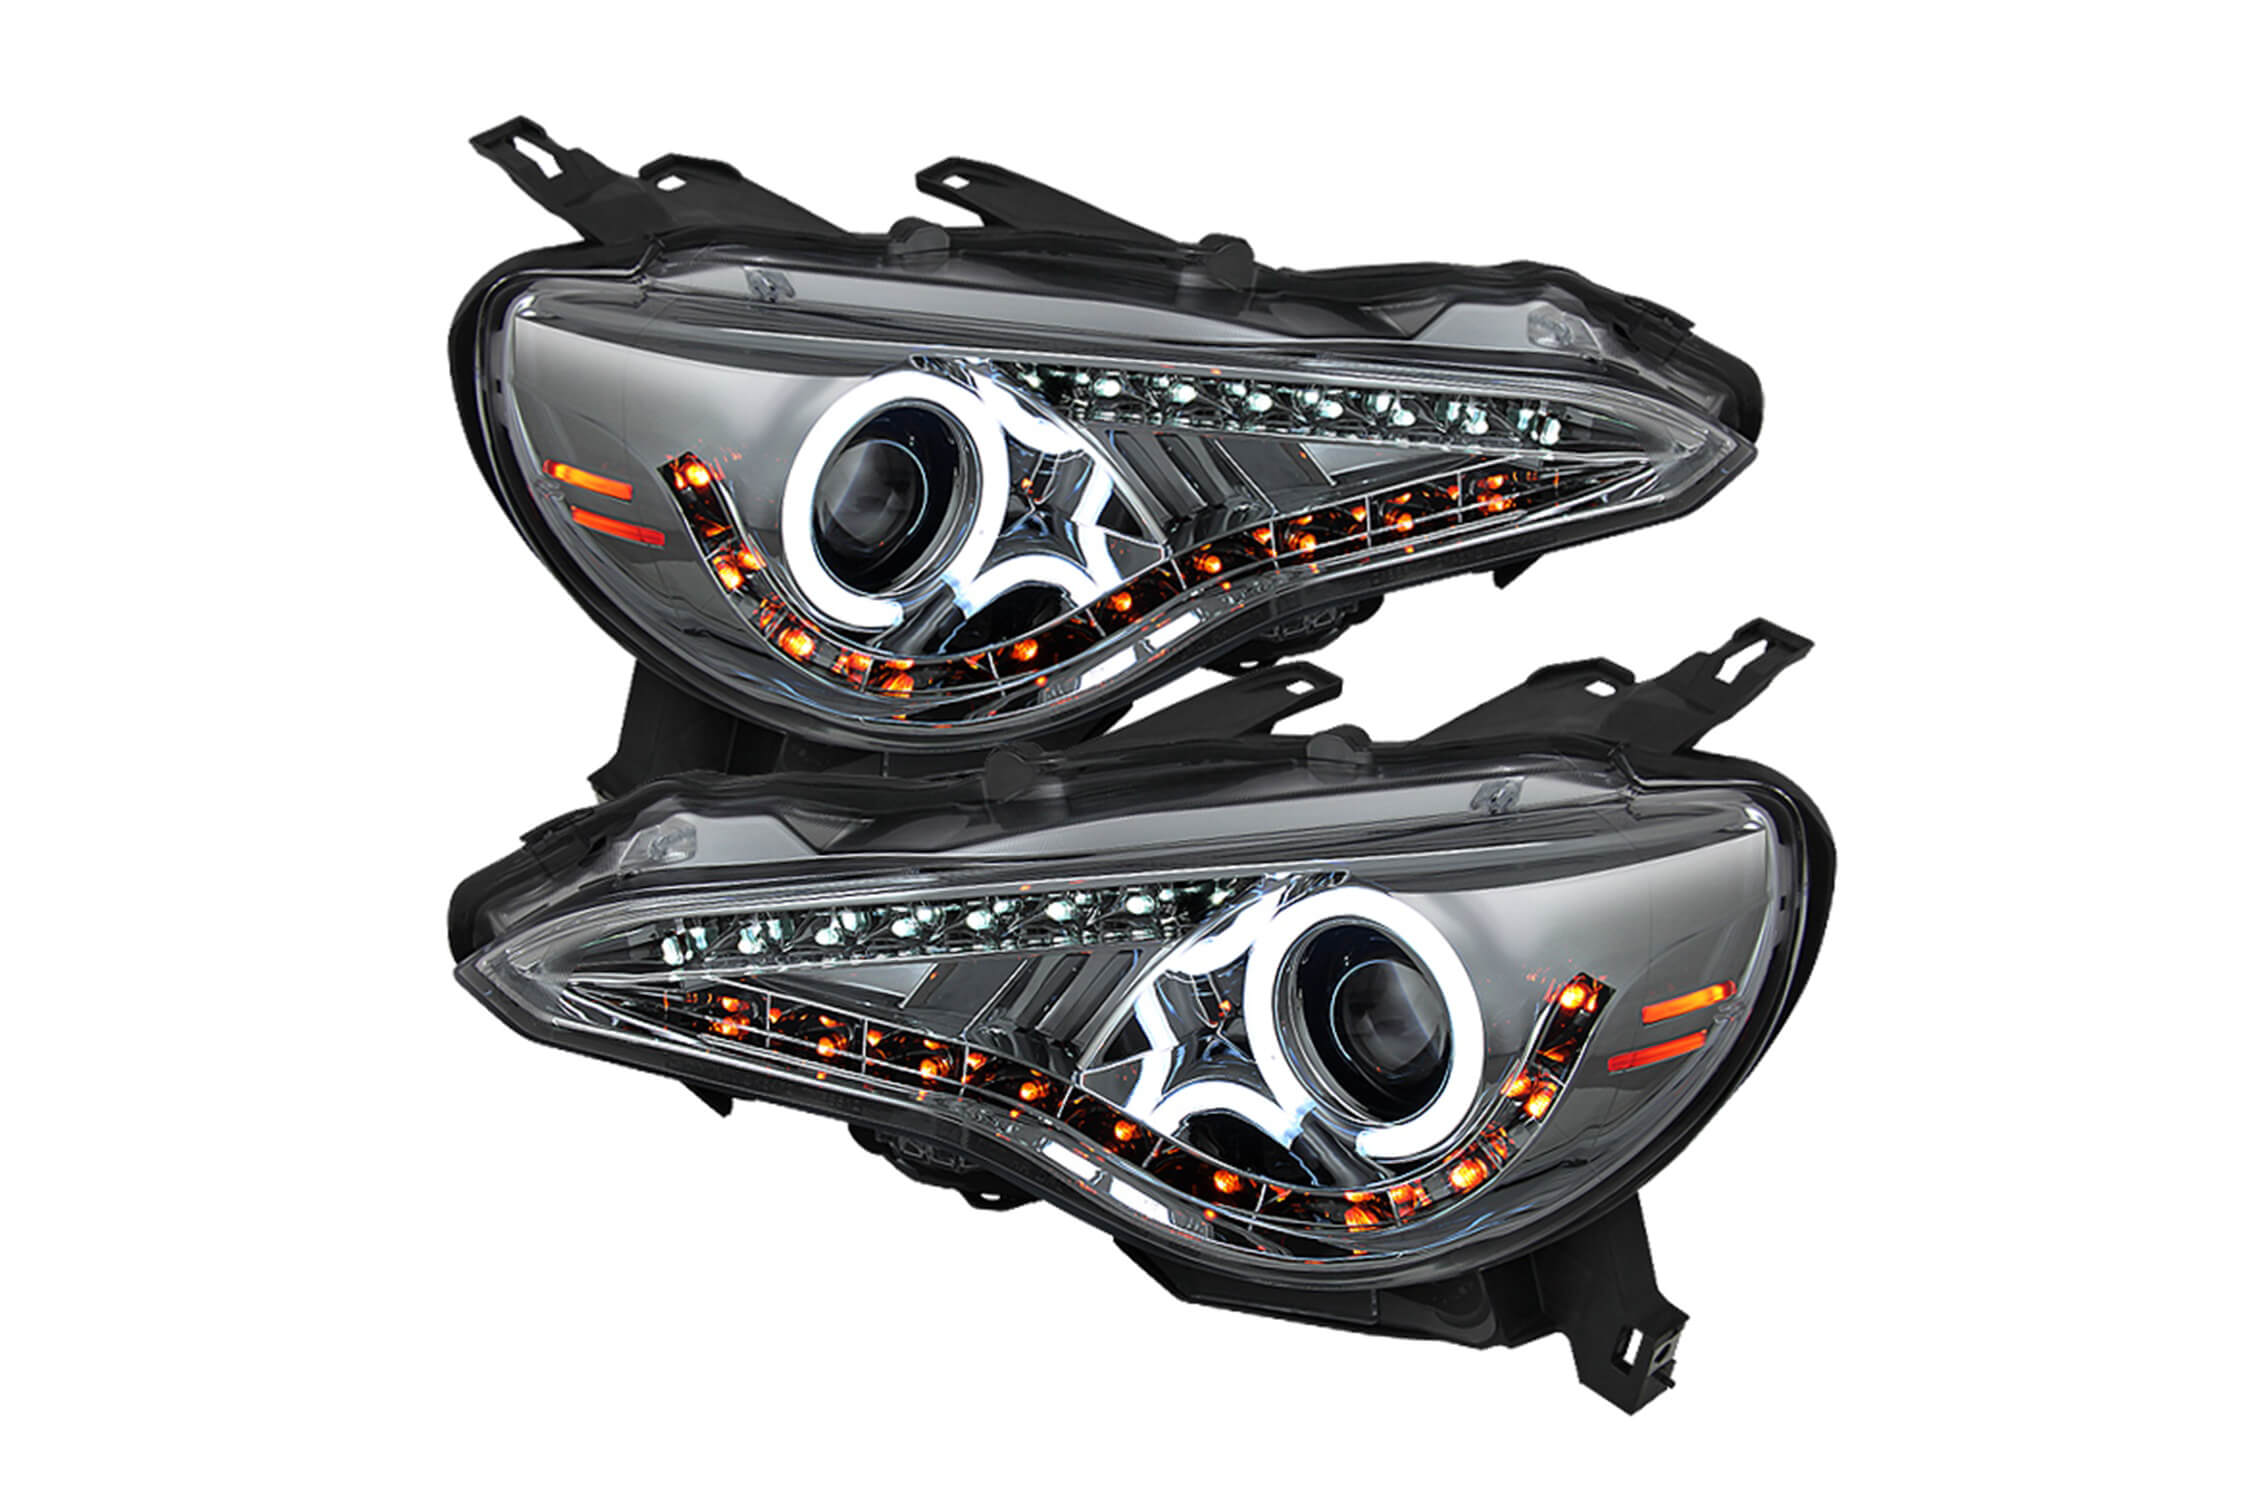 spyder projector head lights 5 spyder projector headlights set fast & free shipping! lund visor wiring harness at eliteediting.co